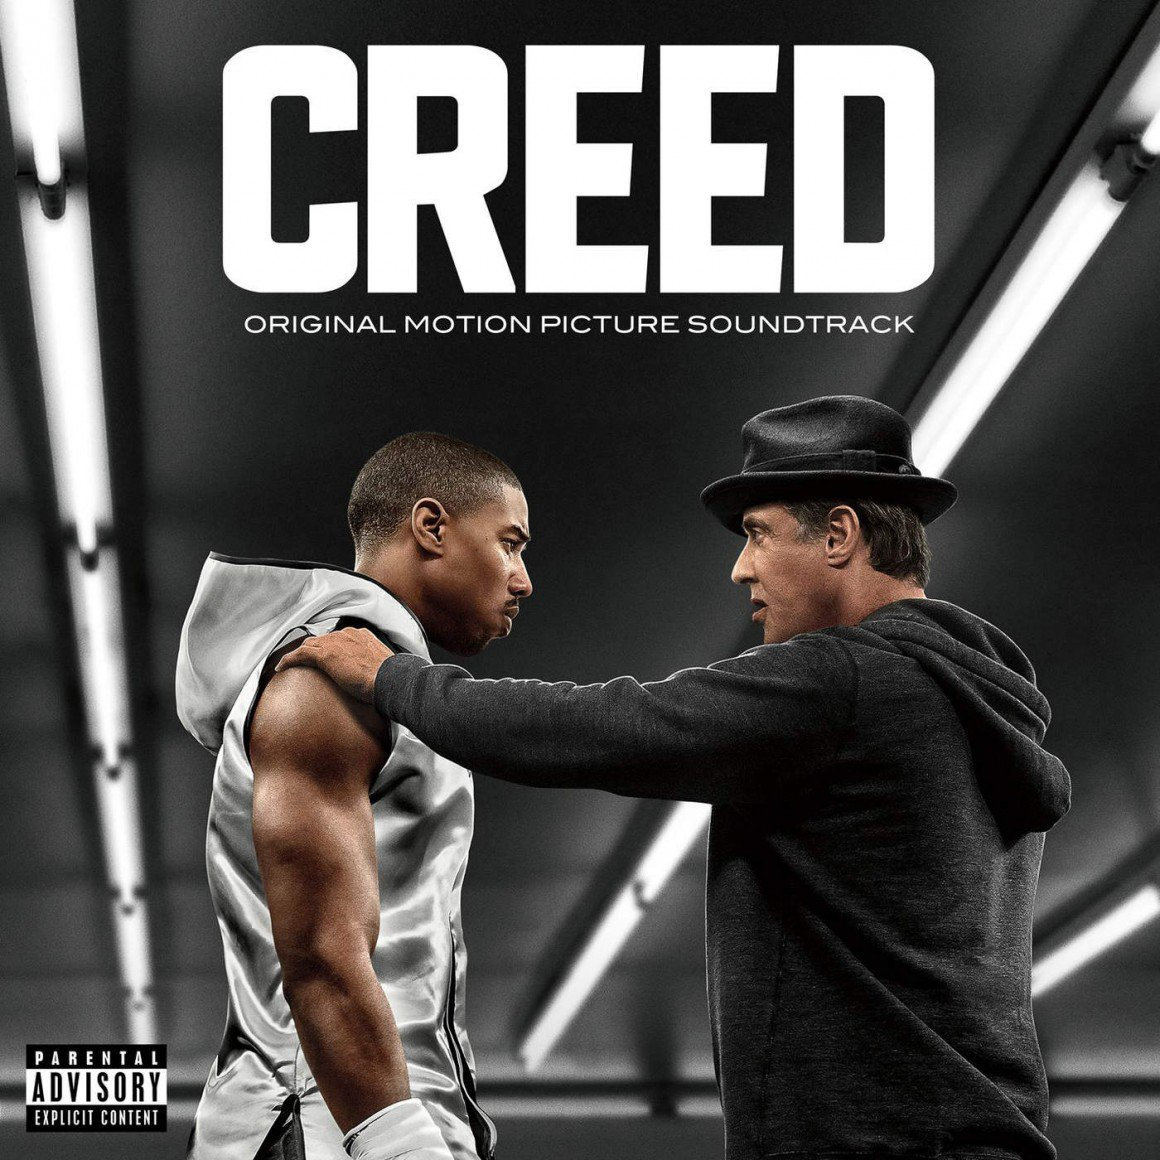 creed-original-motion-picture-soundtrack-1160x1160